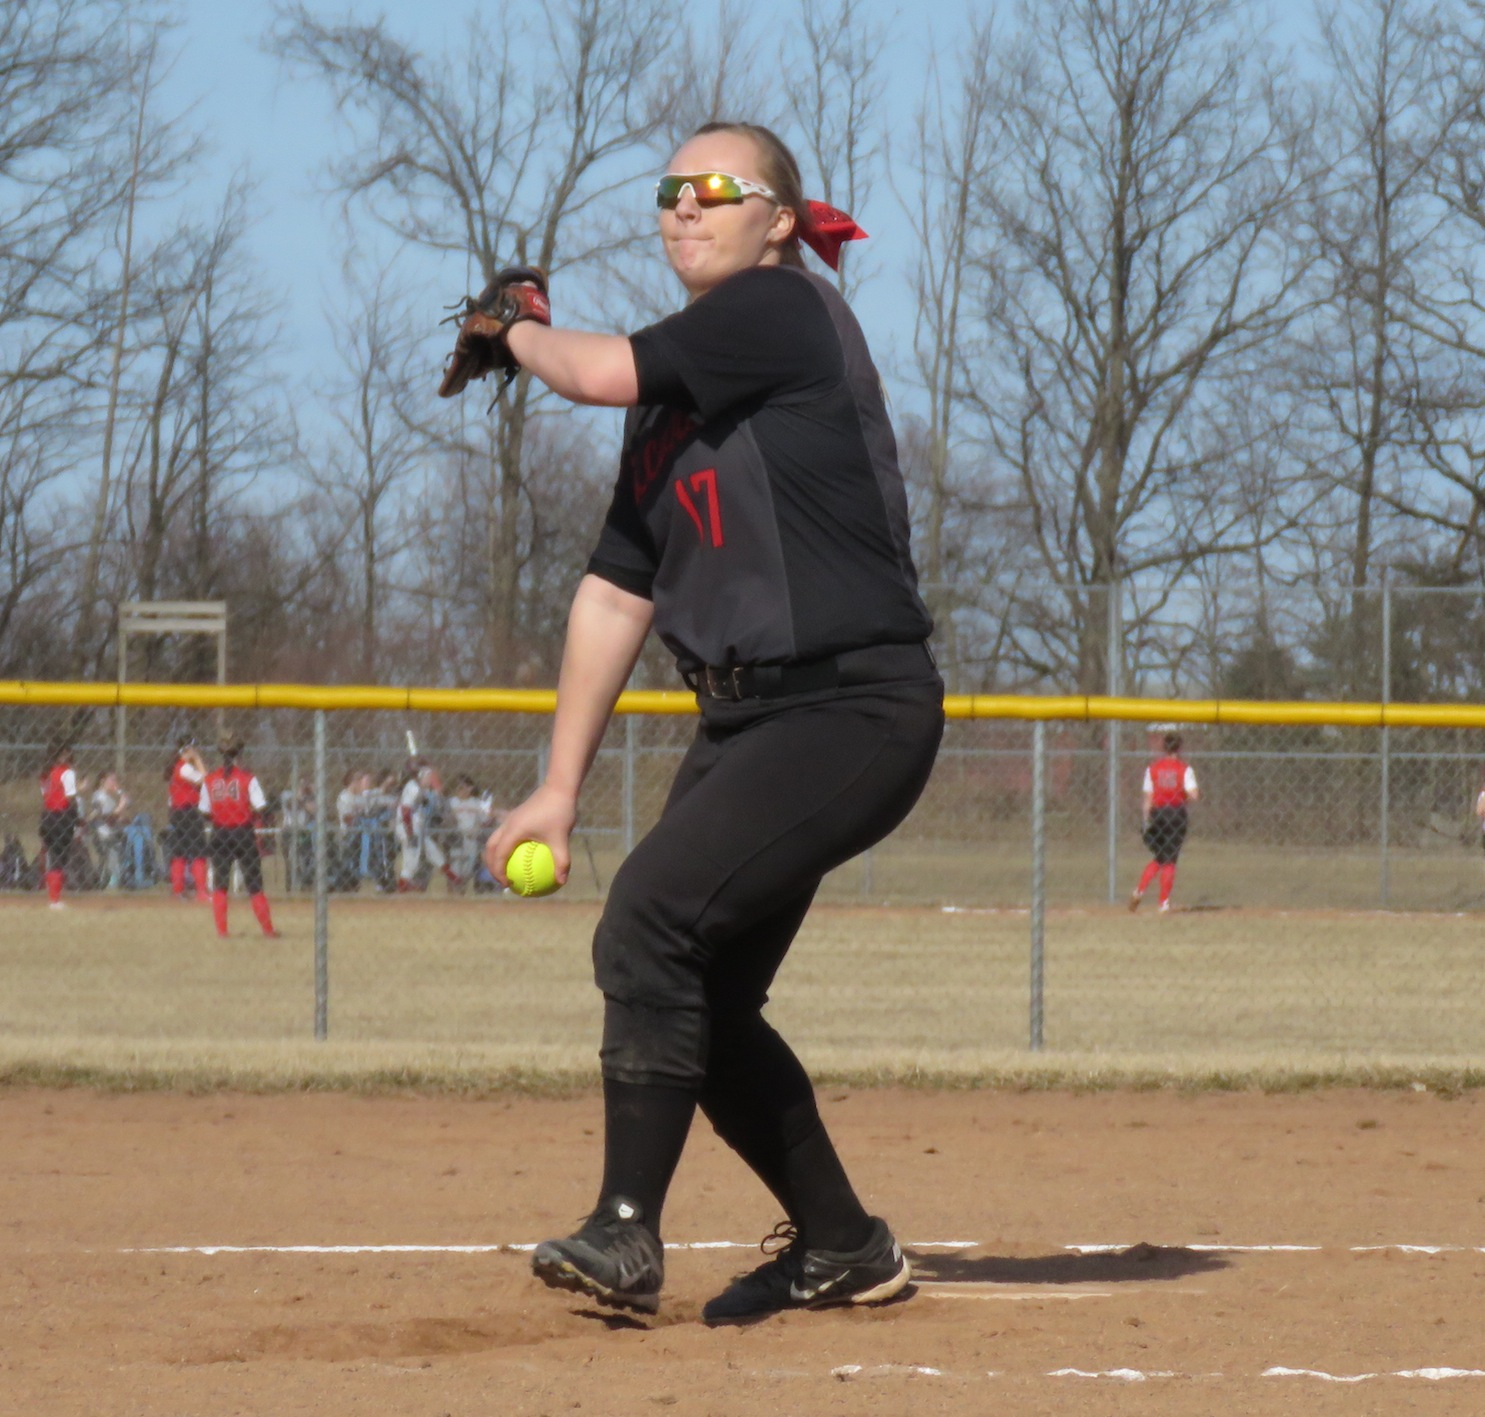 Niagara-Wheatfield senior Mackenzie Quider throws a pitch for the Falcons during the team's scrimmage versus Starpoint last Friday. (Photos by David Yarger)